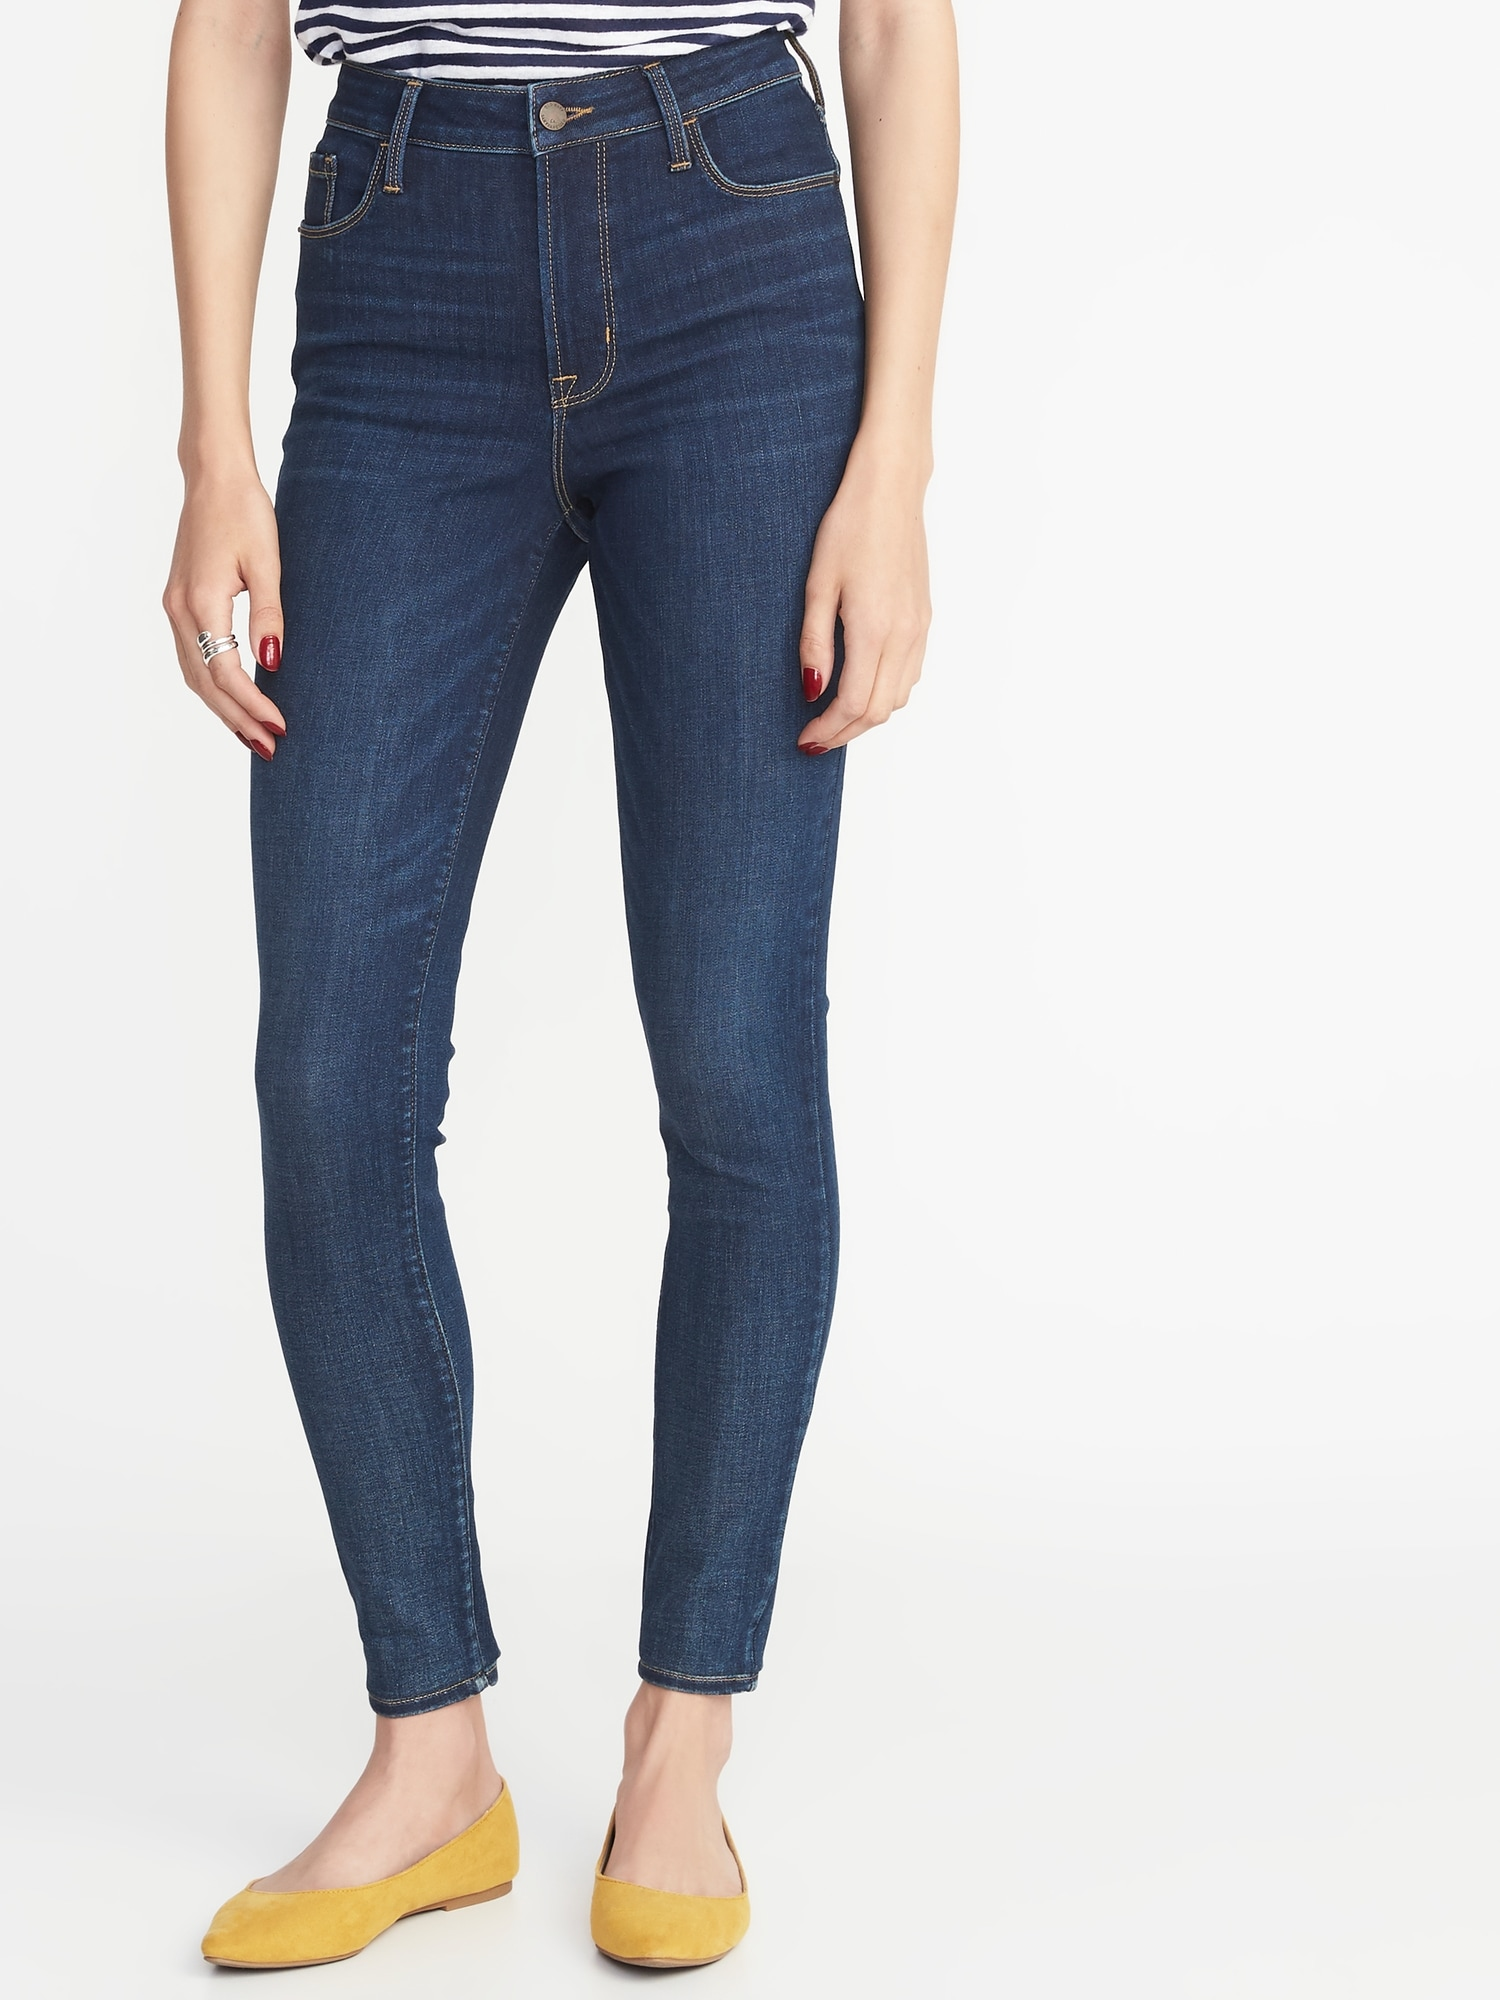 a32959f556b High-Rise Secret-Slim Pockets Rockstar Jeans for Women